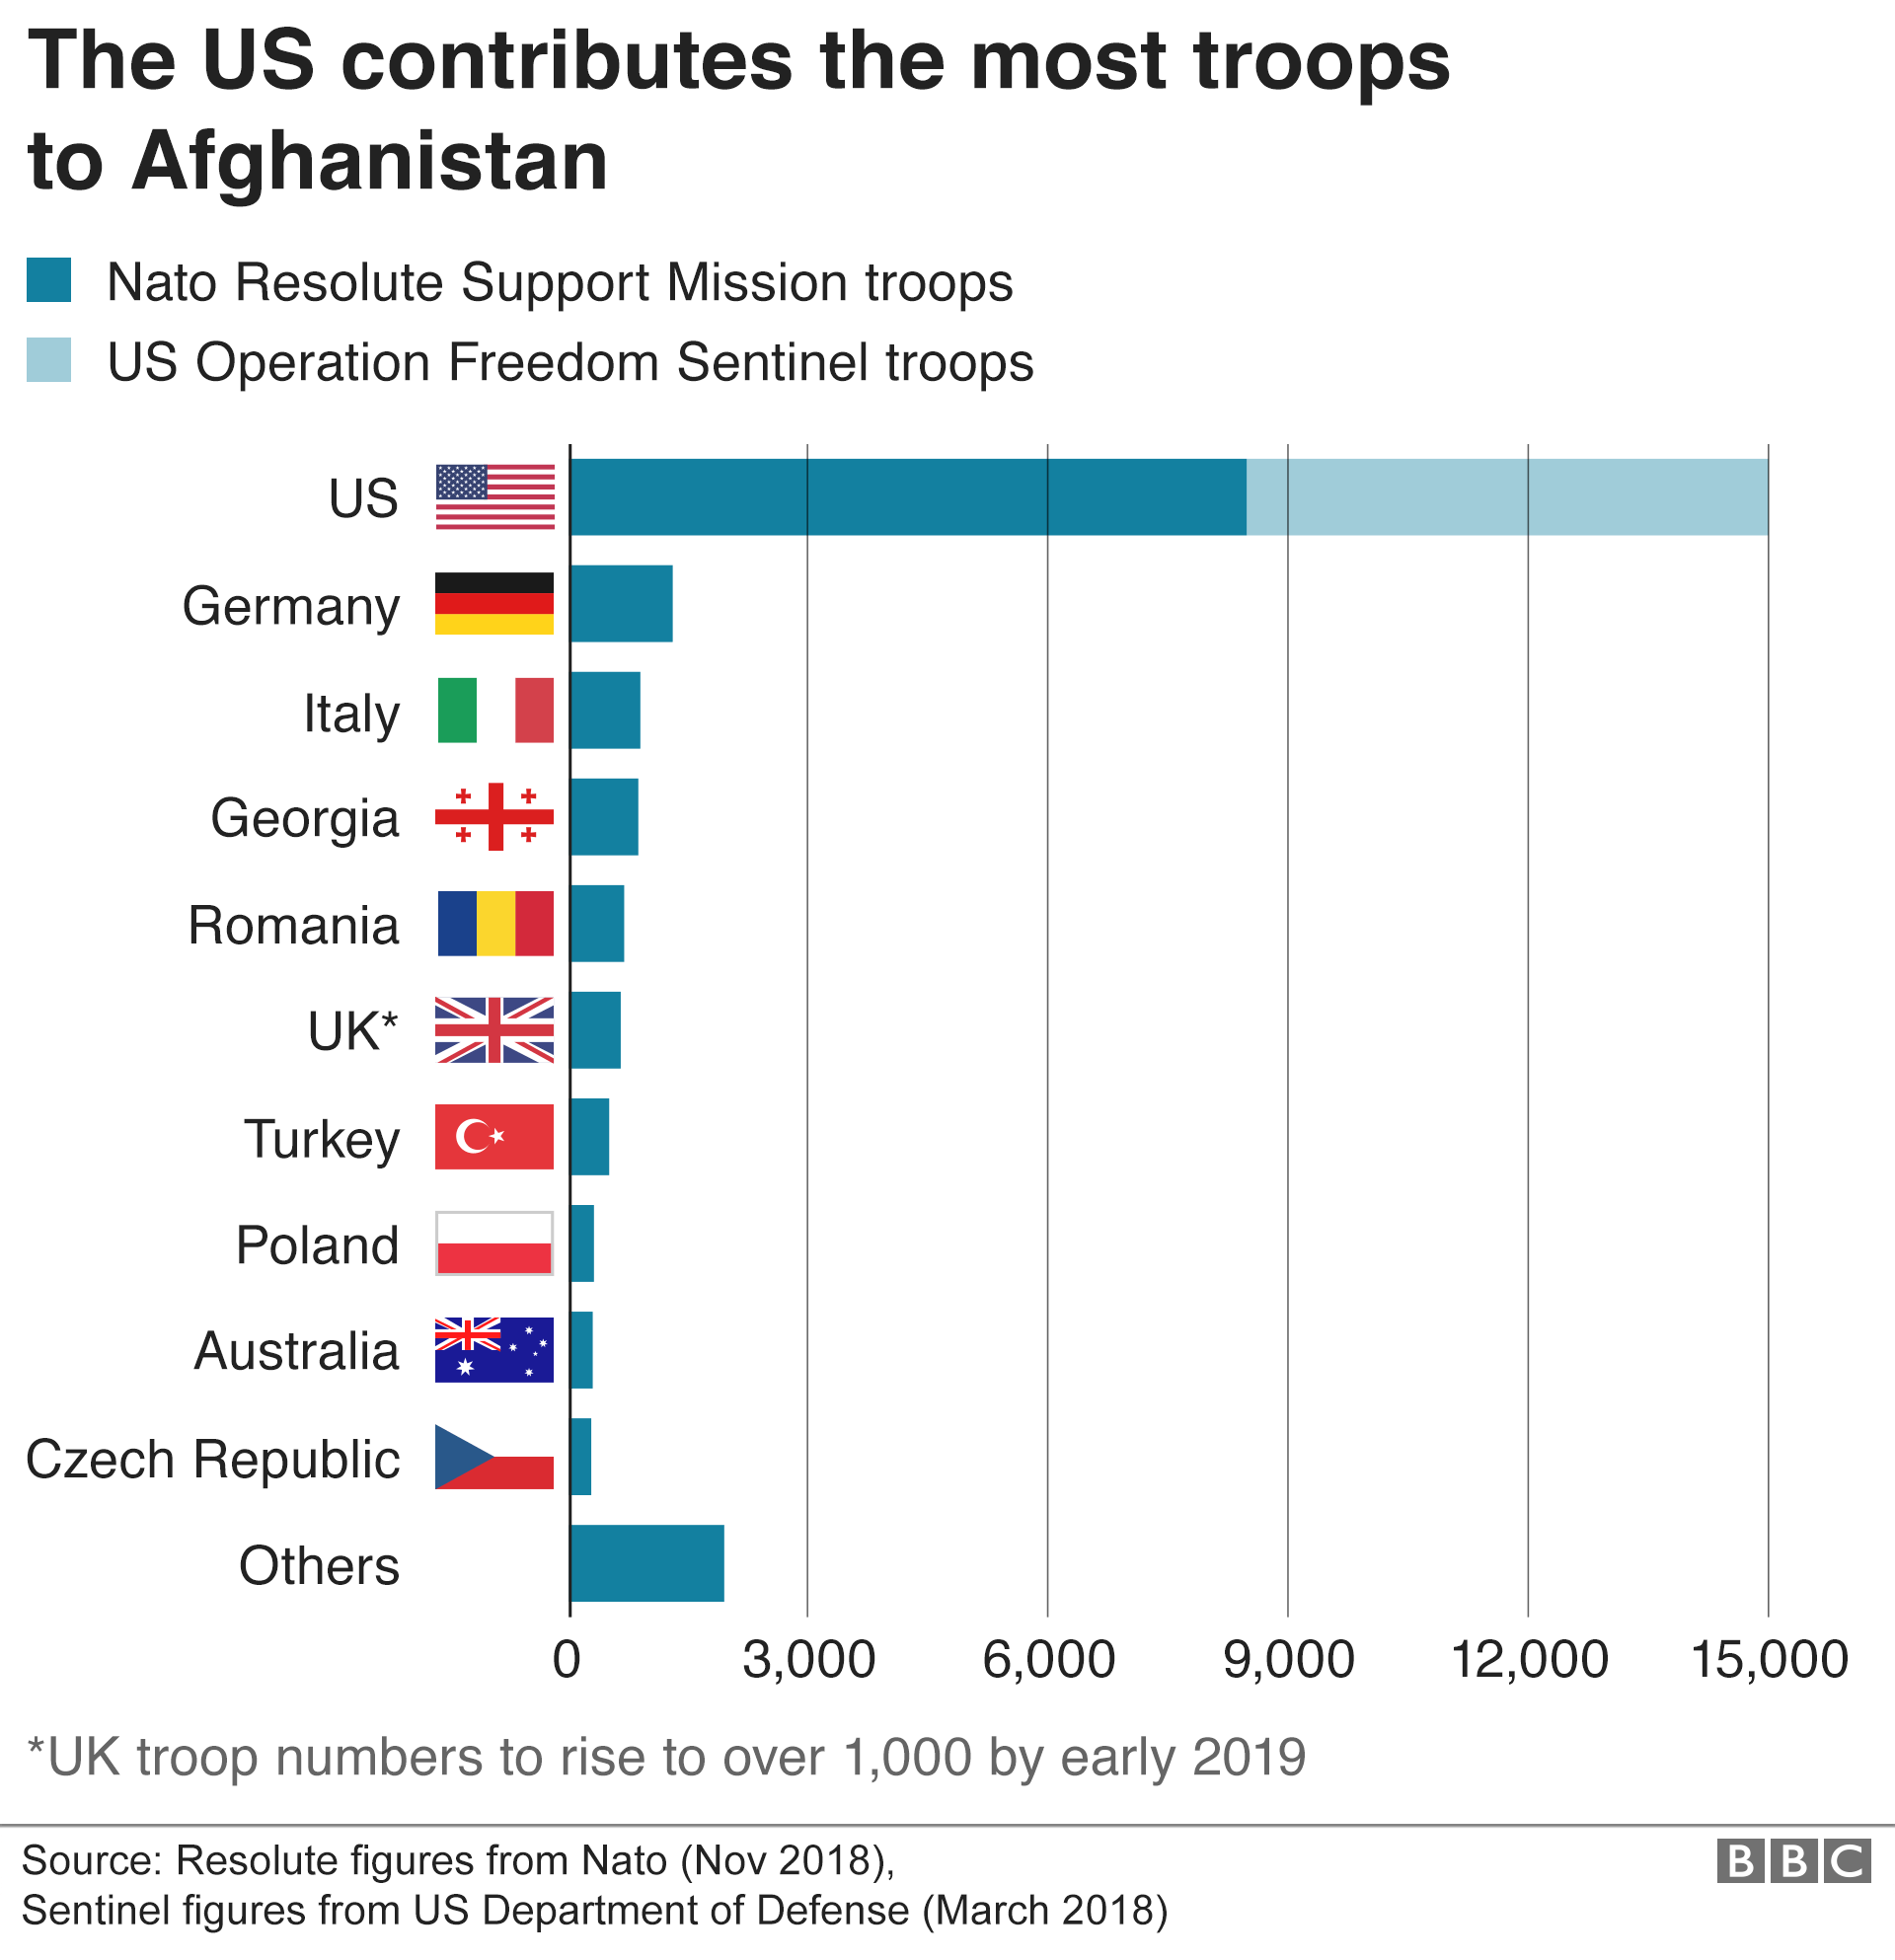 Chart showing the countries that contribute troops to Afghanistan - with the US contributing the most troops by far